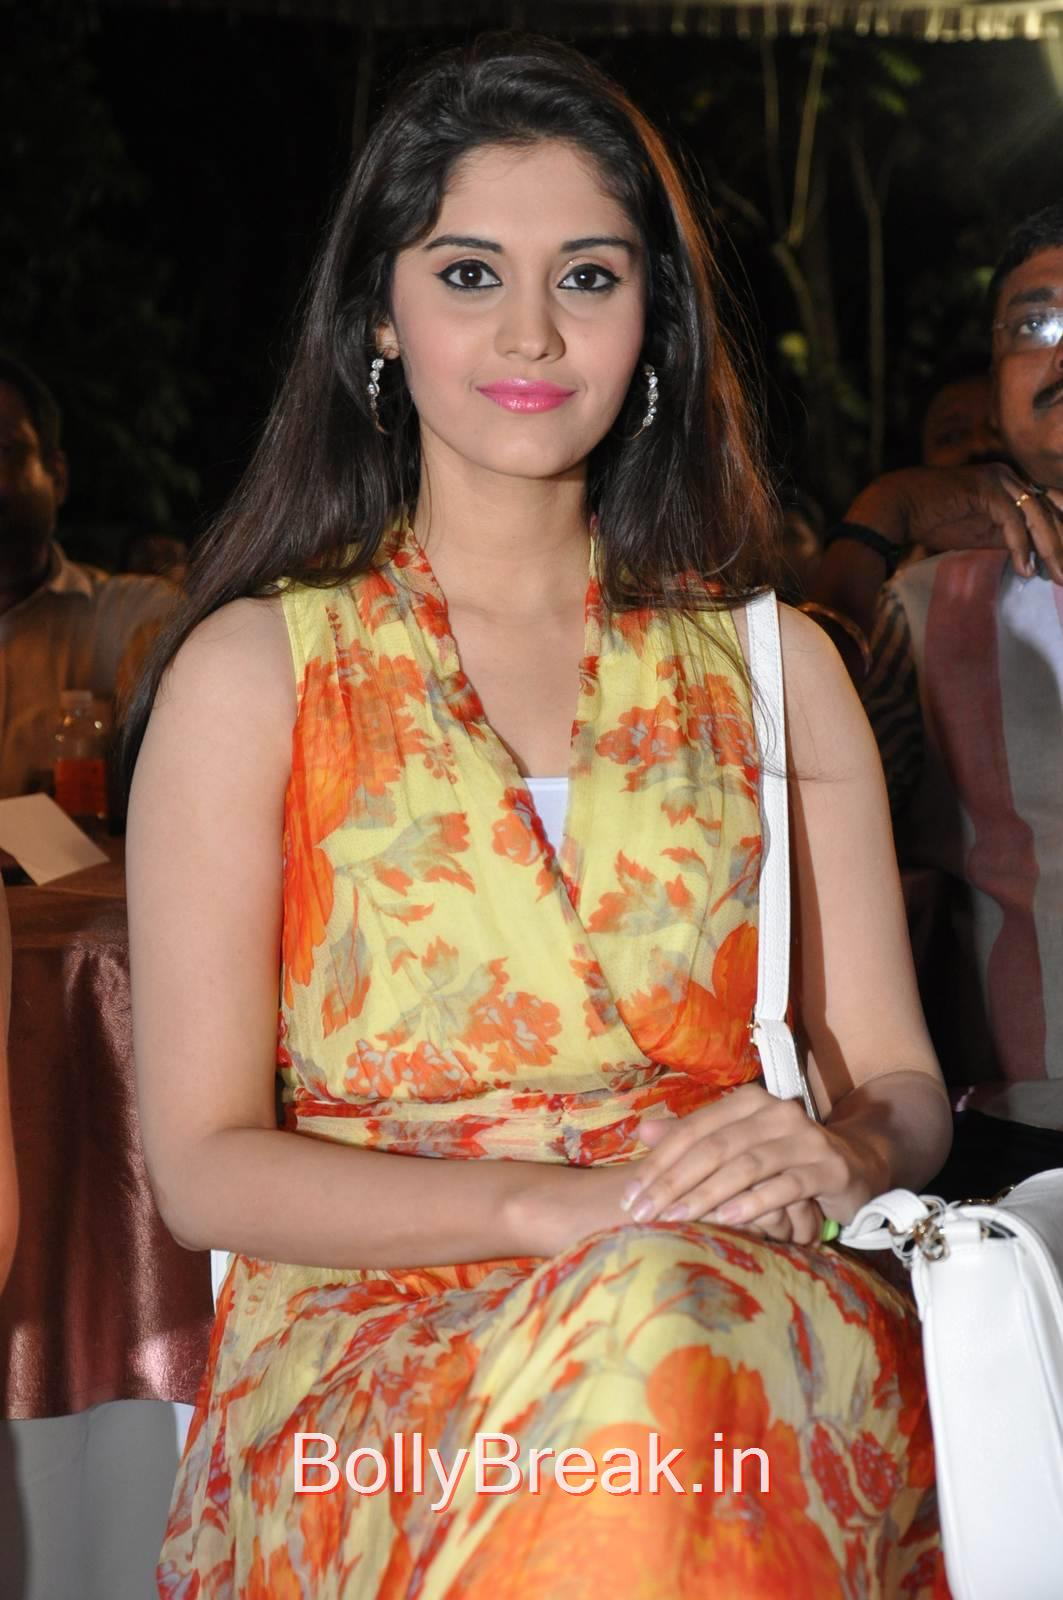 High Quality Surabhi Pics, Actress Surabhi Hot Photo gallery from an event